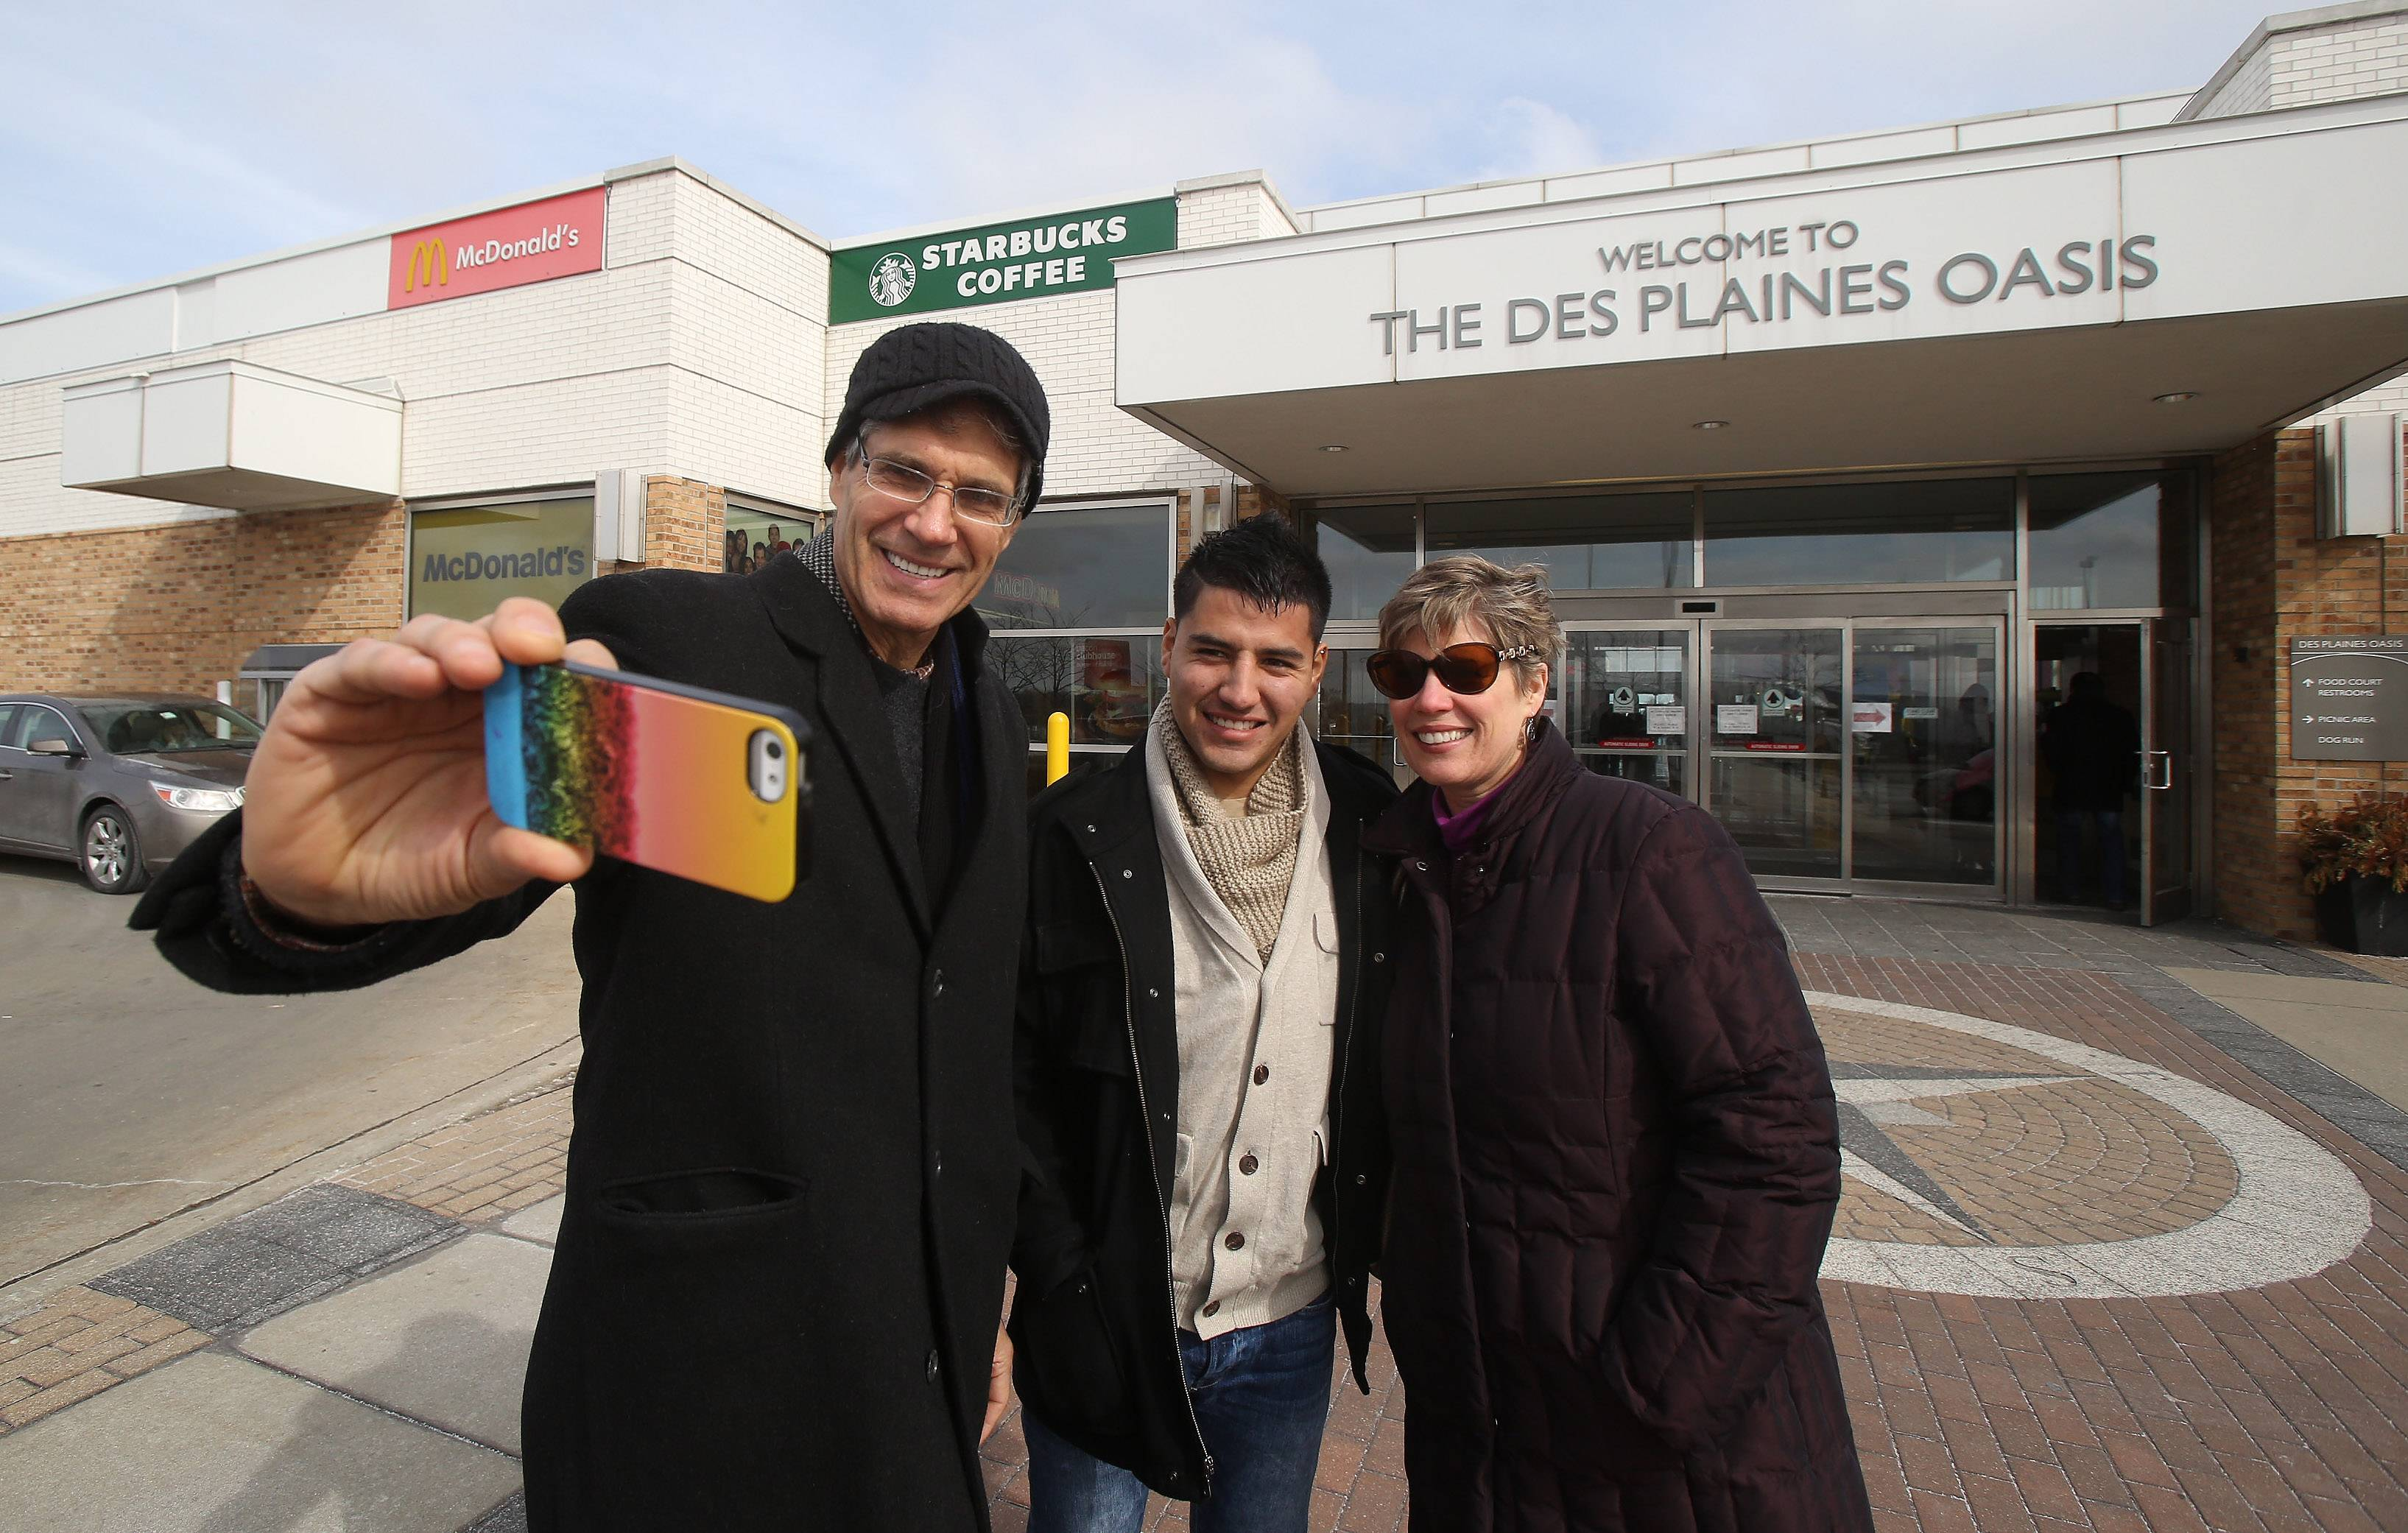 Streamwood residents Larry Pahl takes a picture of himself with Oliver Huerta and Pahl's wife, Lynn, on the last day of operation of the Des Plaines Oasis Sunday. The oasis is closing to allow for widening of the tollway to four lanes each way. The Bartlett High School civics teacher remembered visitng the Oasis during the its first year in 1959 when he was nine-years-old.